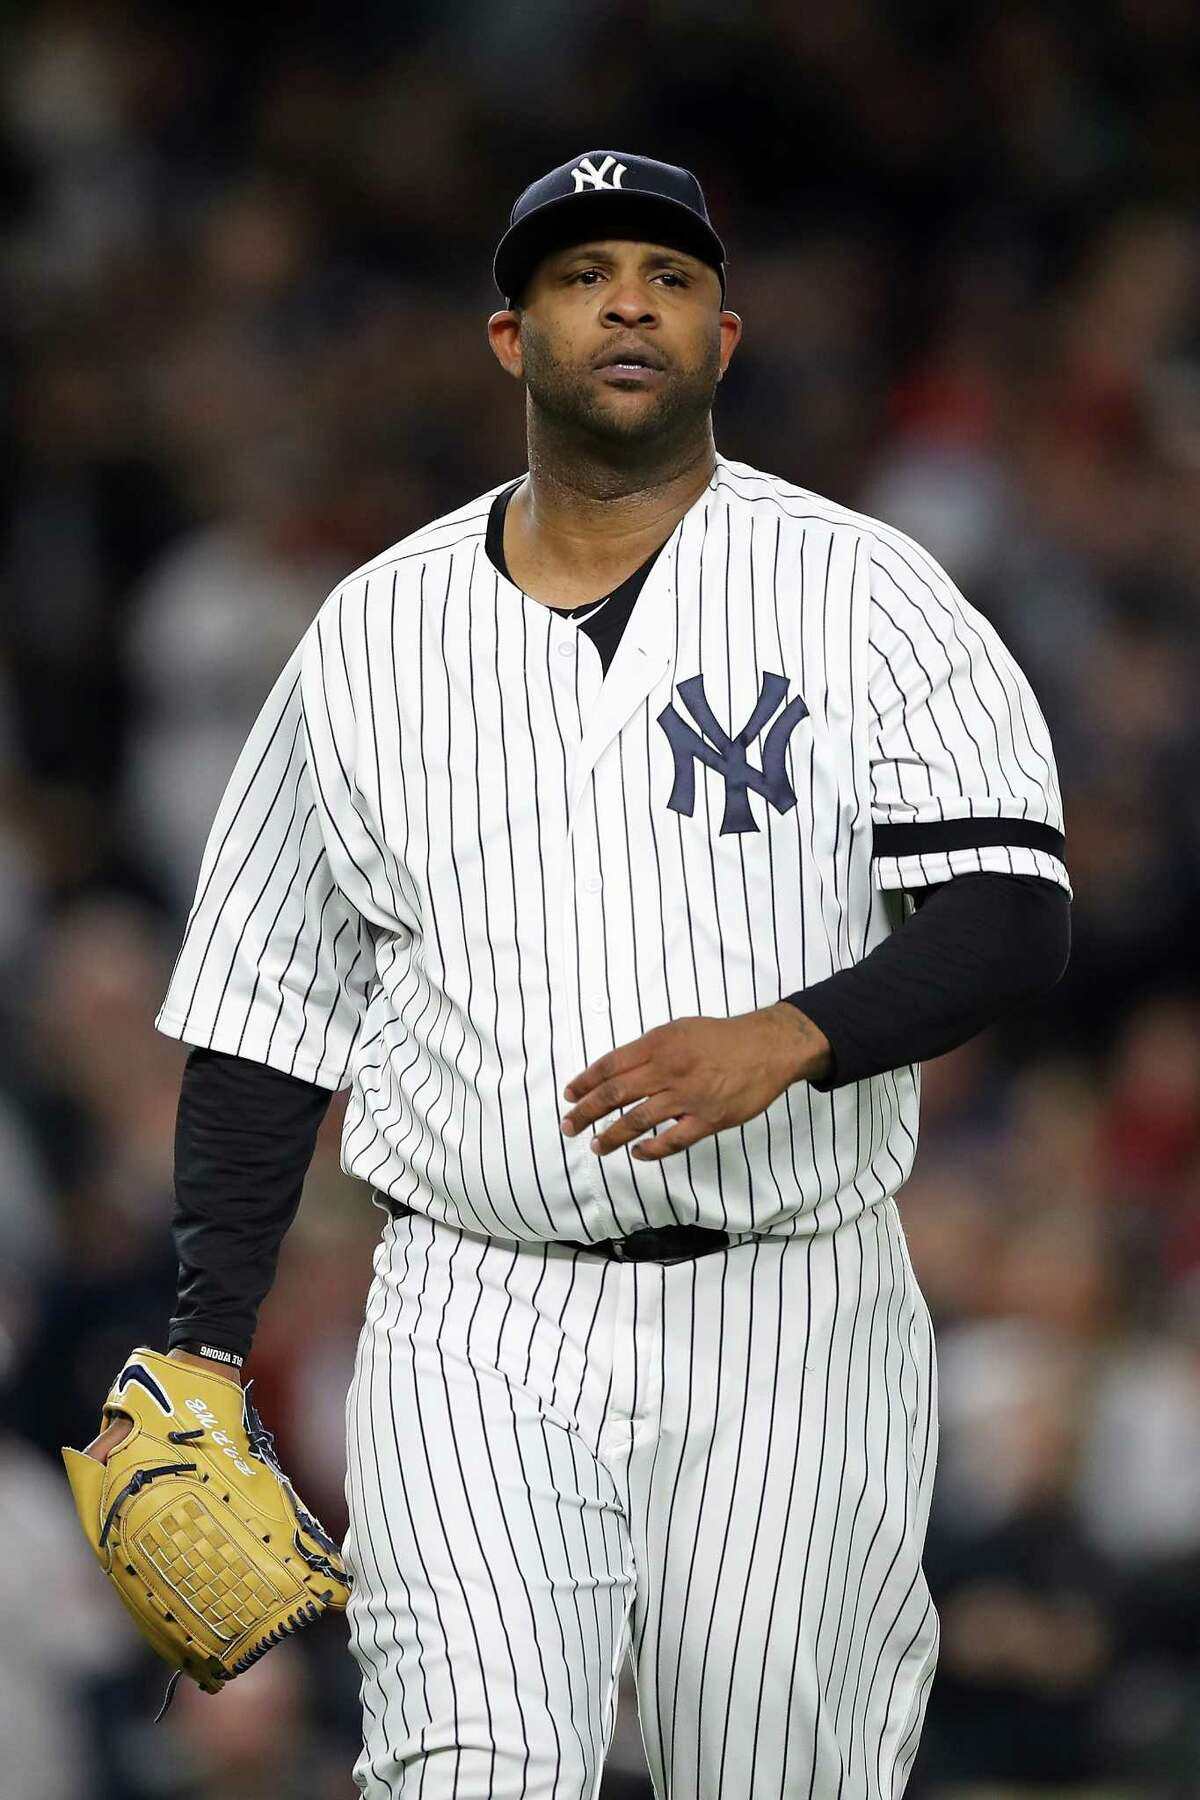 NEW YORK, NY - OCTOBER 16: CC Sabathia #52 of the New York Yankees walks back to the dugout after a strikeout to end the top of the second inning against the Houston Astros in Game Three of the American League Championship Series at Yankee Stadium on October 16, 2017 in the Bronx borough of New York City. (Photo by Elsa/Getty Images) ORG XMIT: 775058091